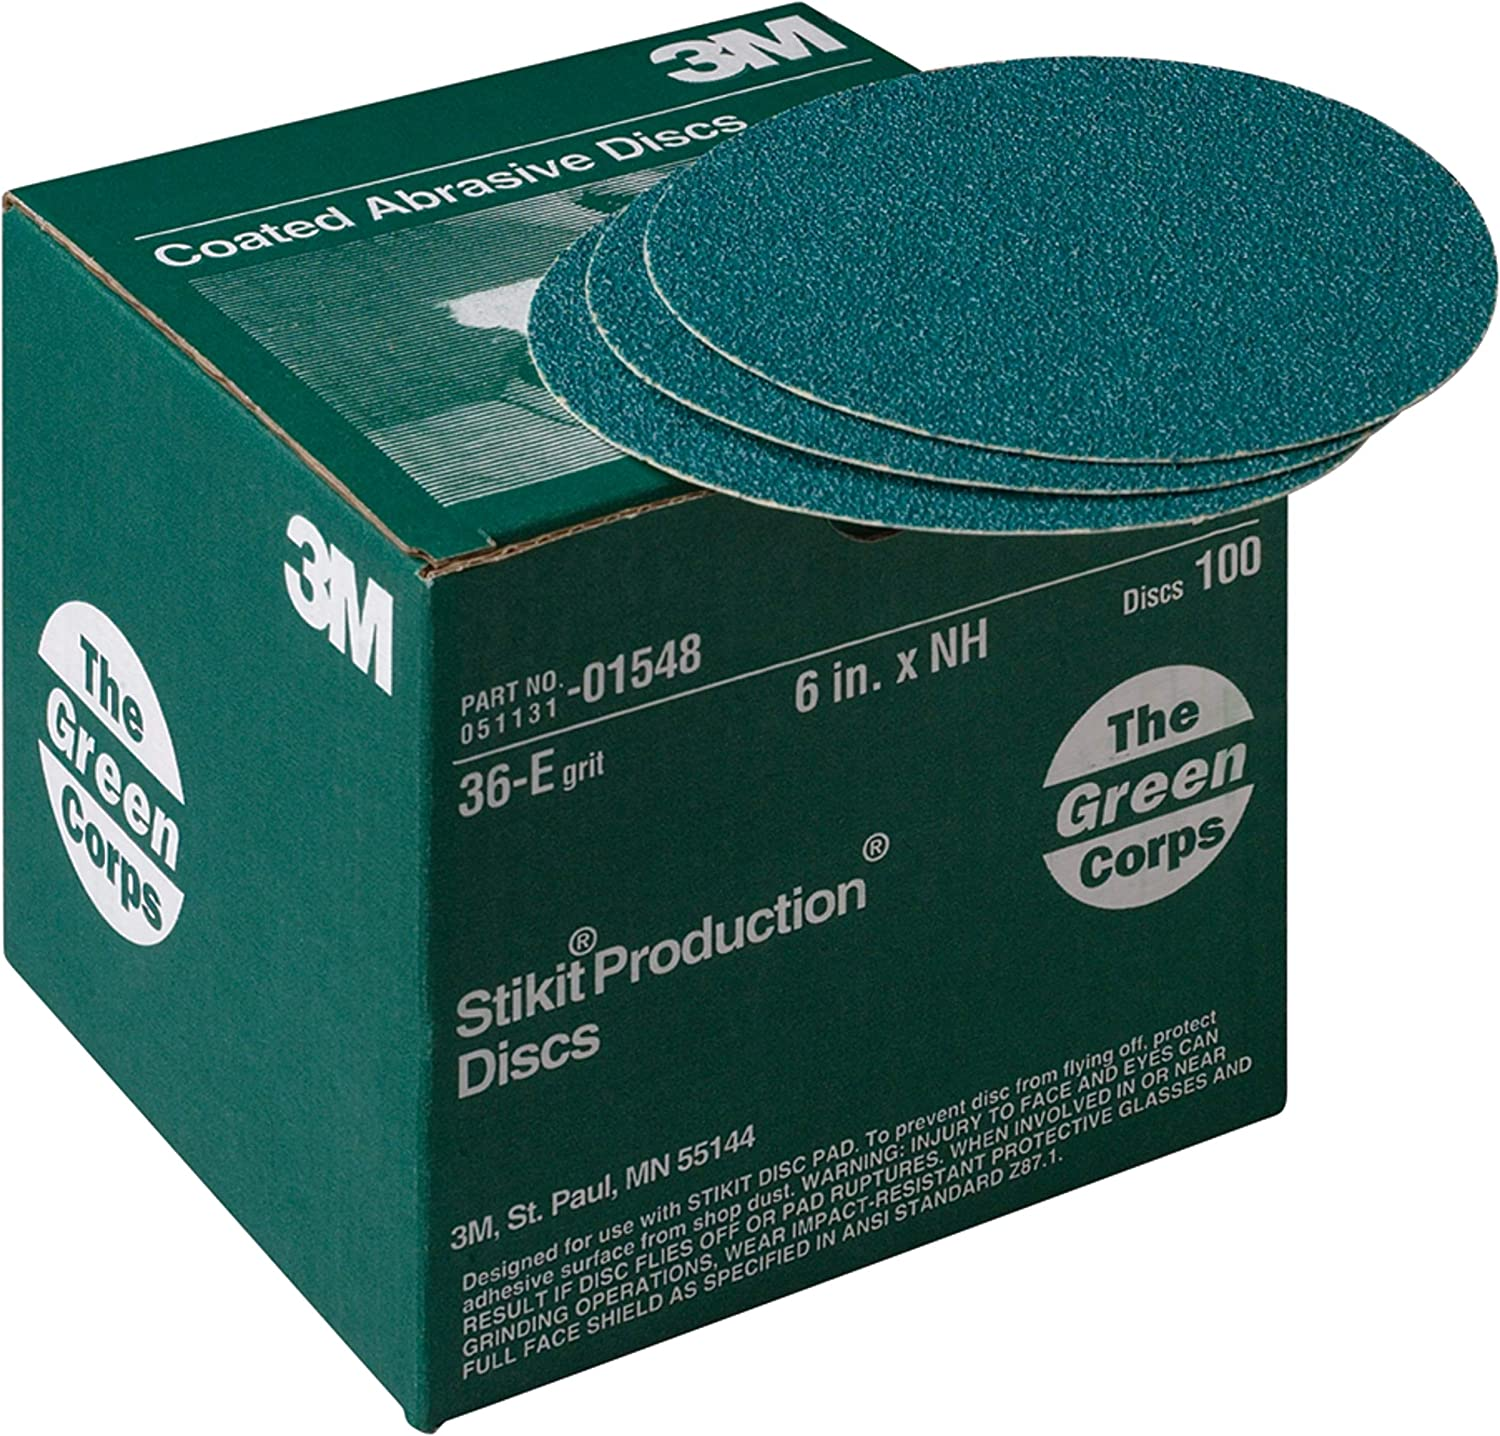 3M 1550 Green Corps Stikit Production Disc 8in 40E grit 50 discs shaping sand